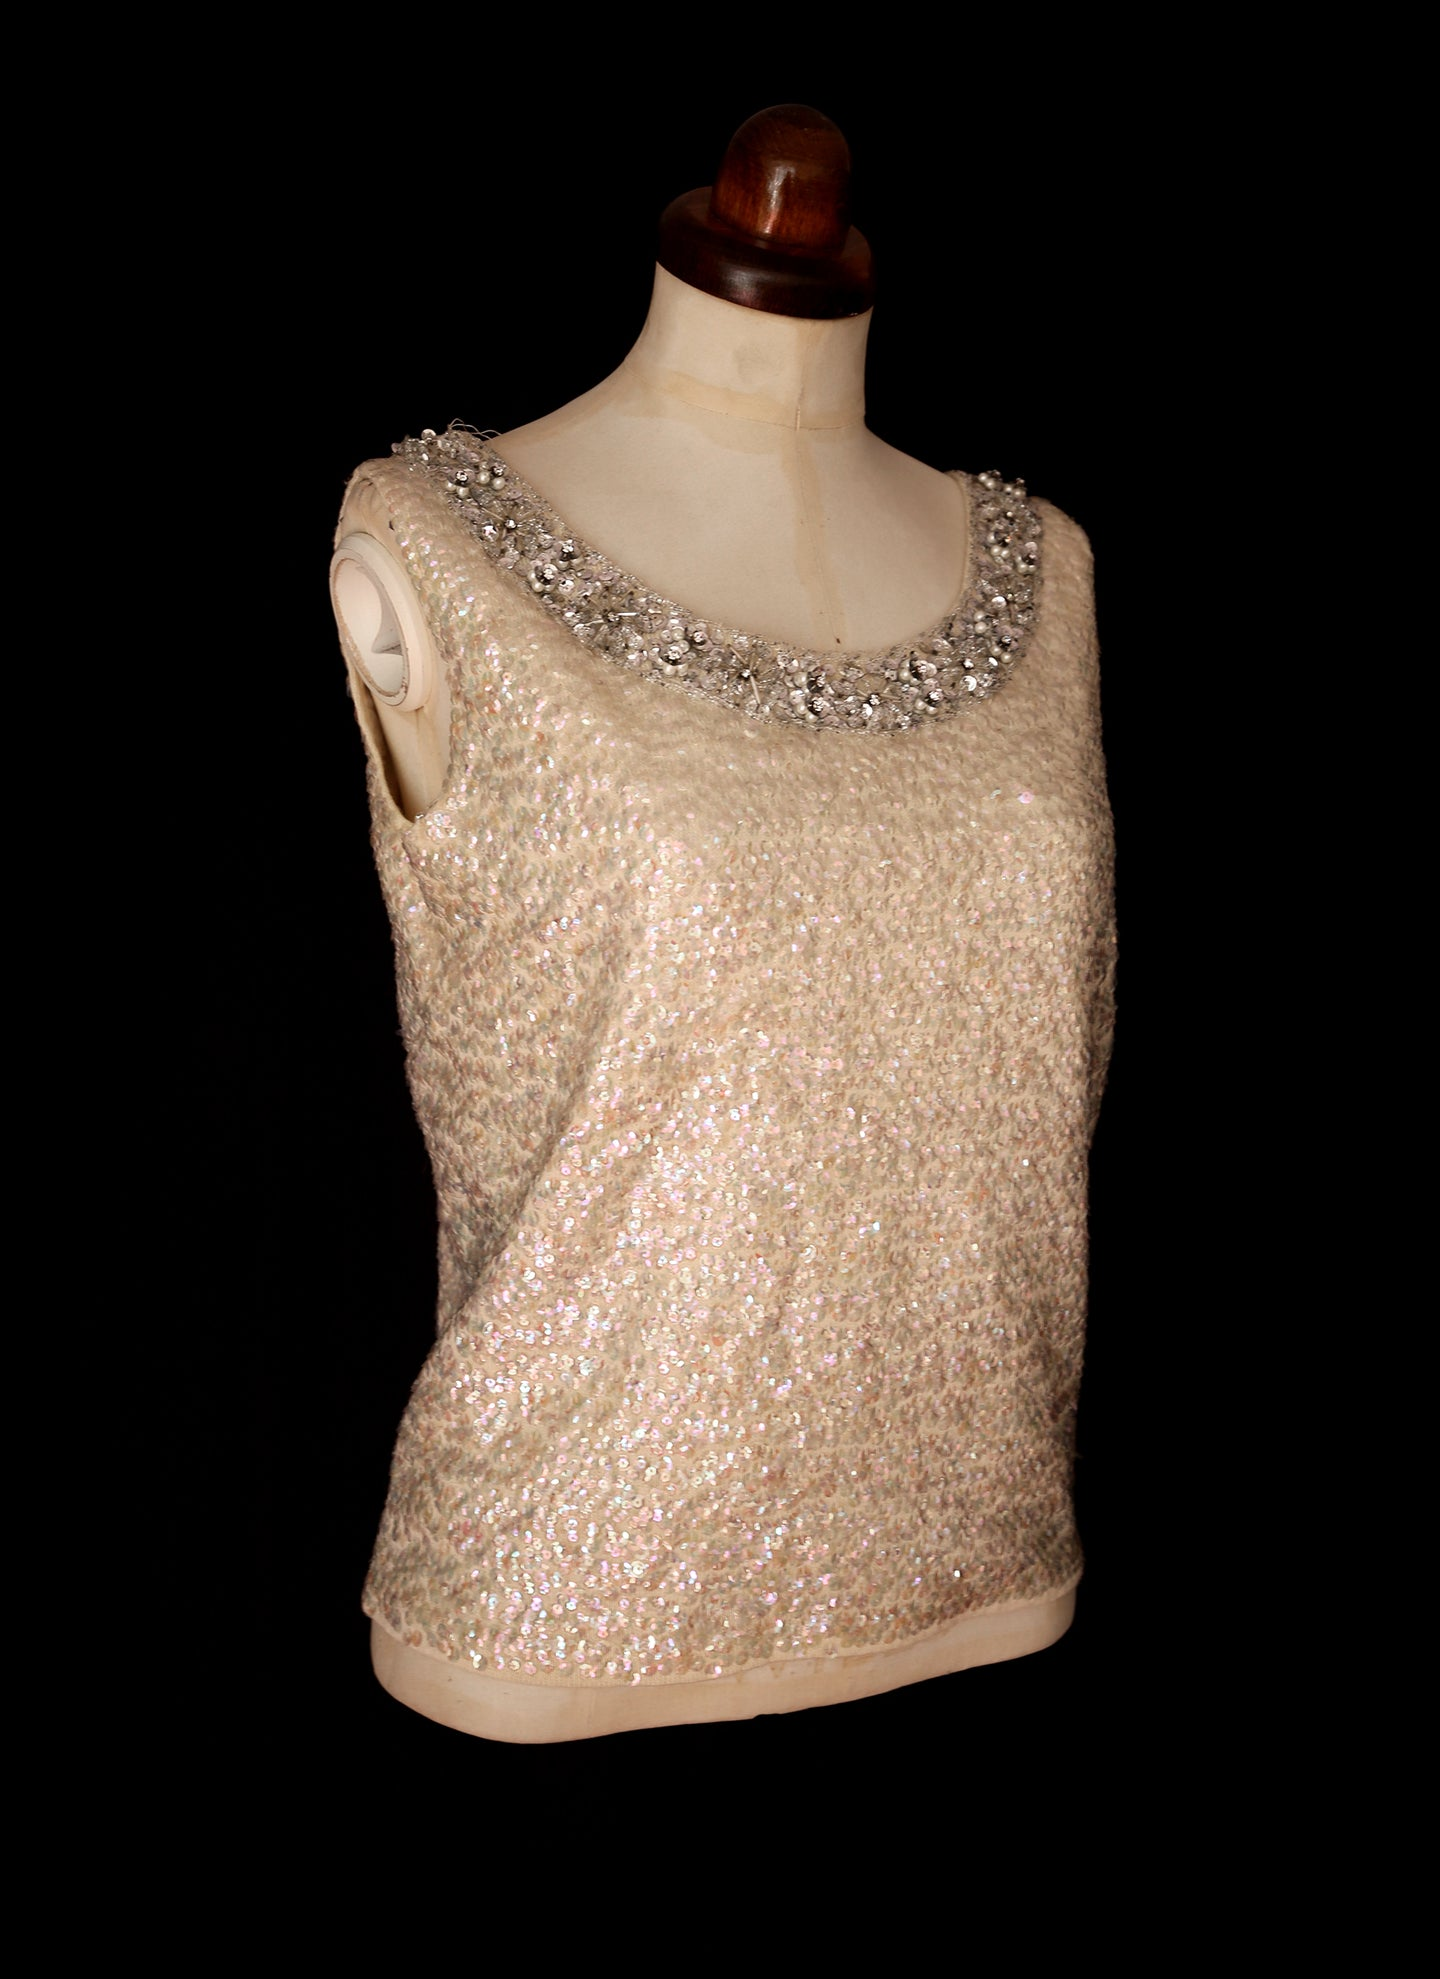 Vintage 1960s Iridescent Ivory Sequin Top